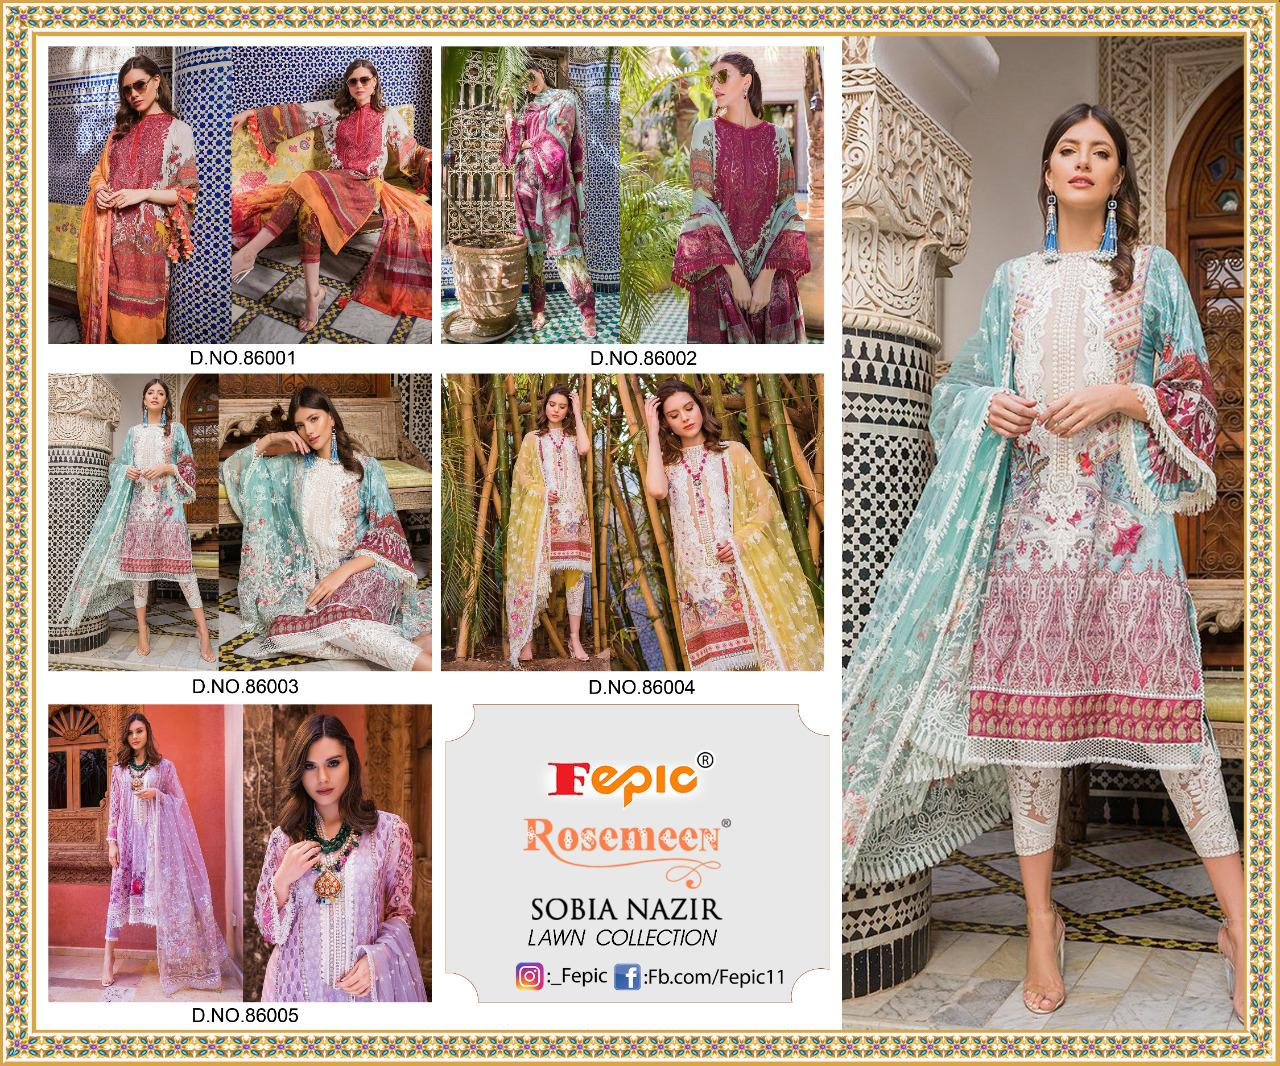 Fepic Rosemeen Sobia Nazir Lawn Collection Digital Printed Pure Cambric Cotton Pakistani Dress Material At Wholesale Rate